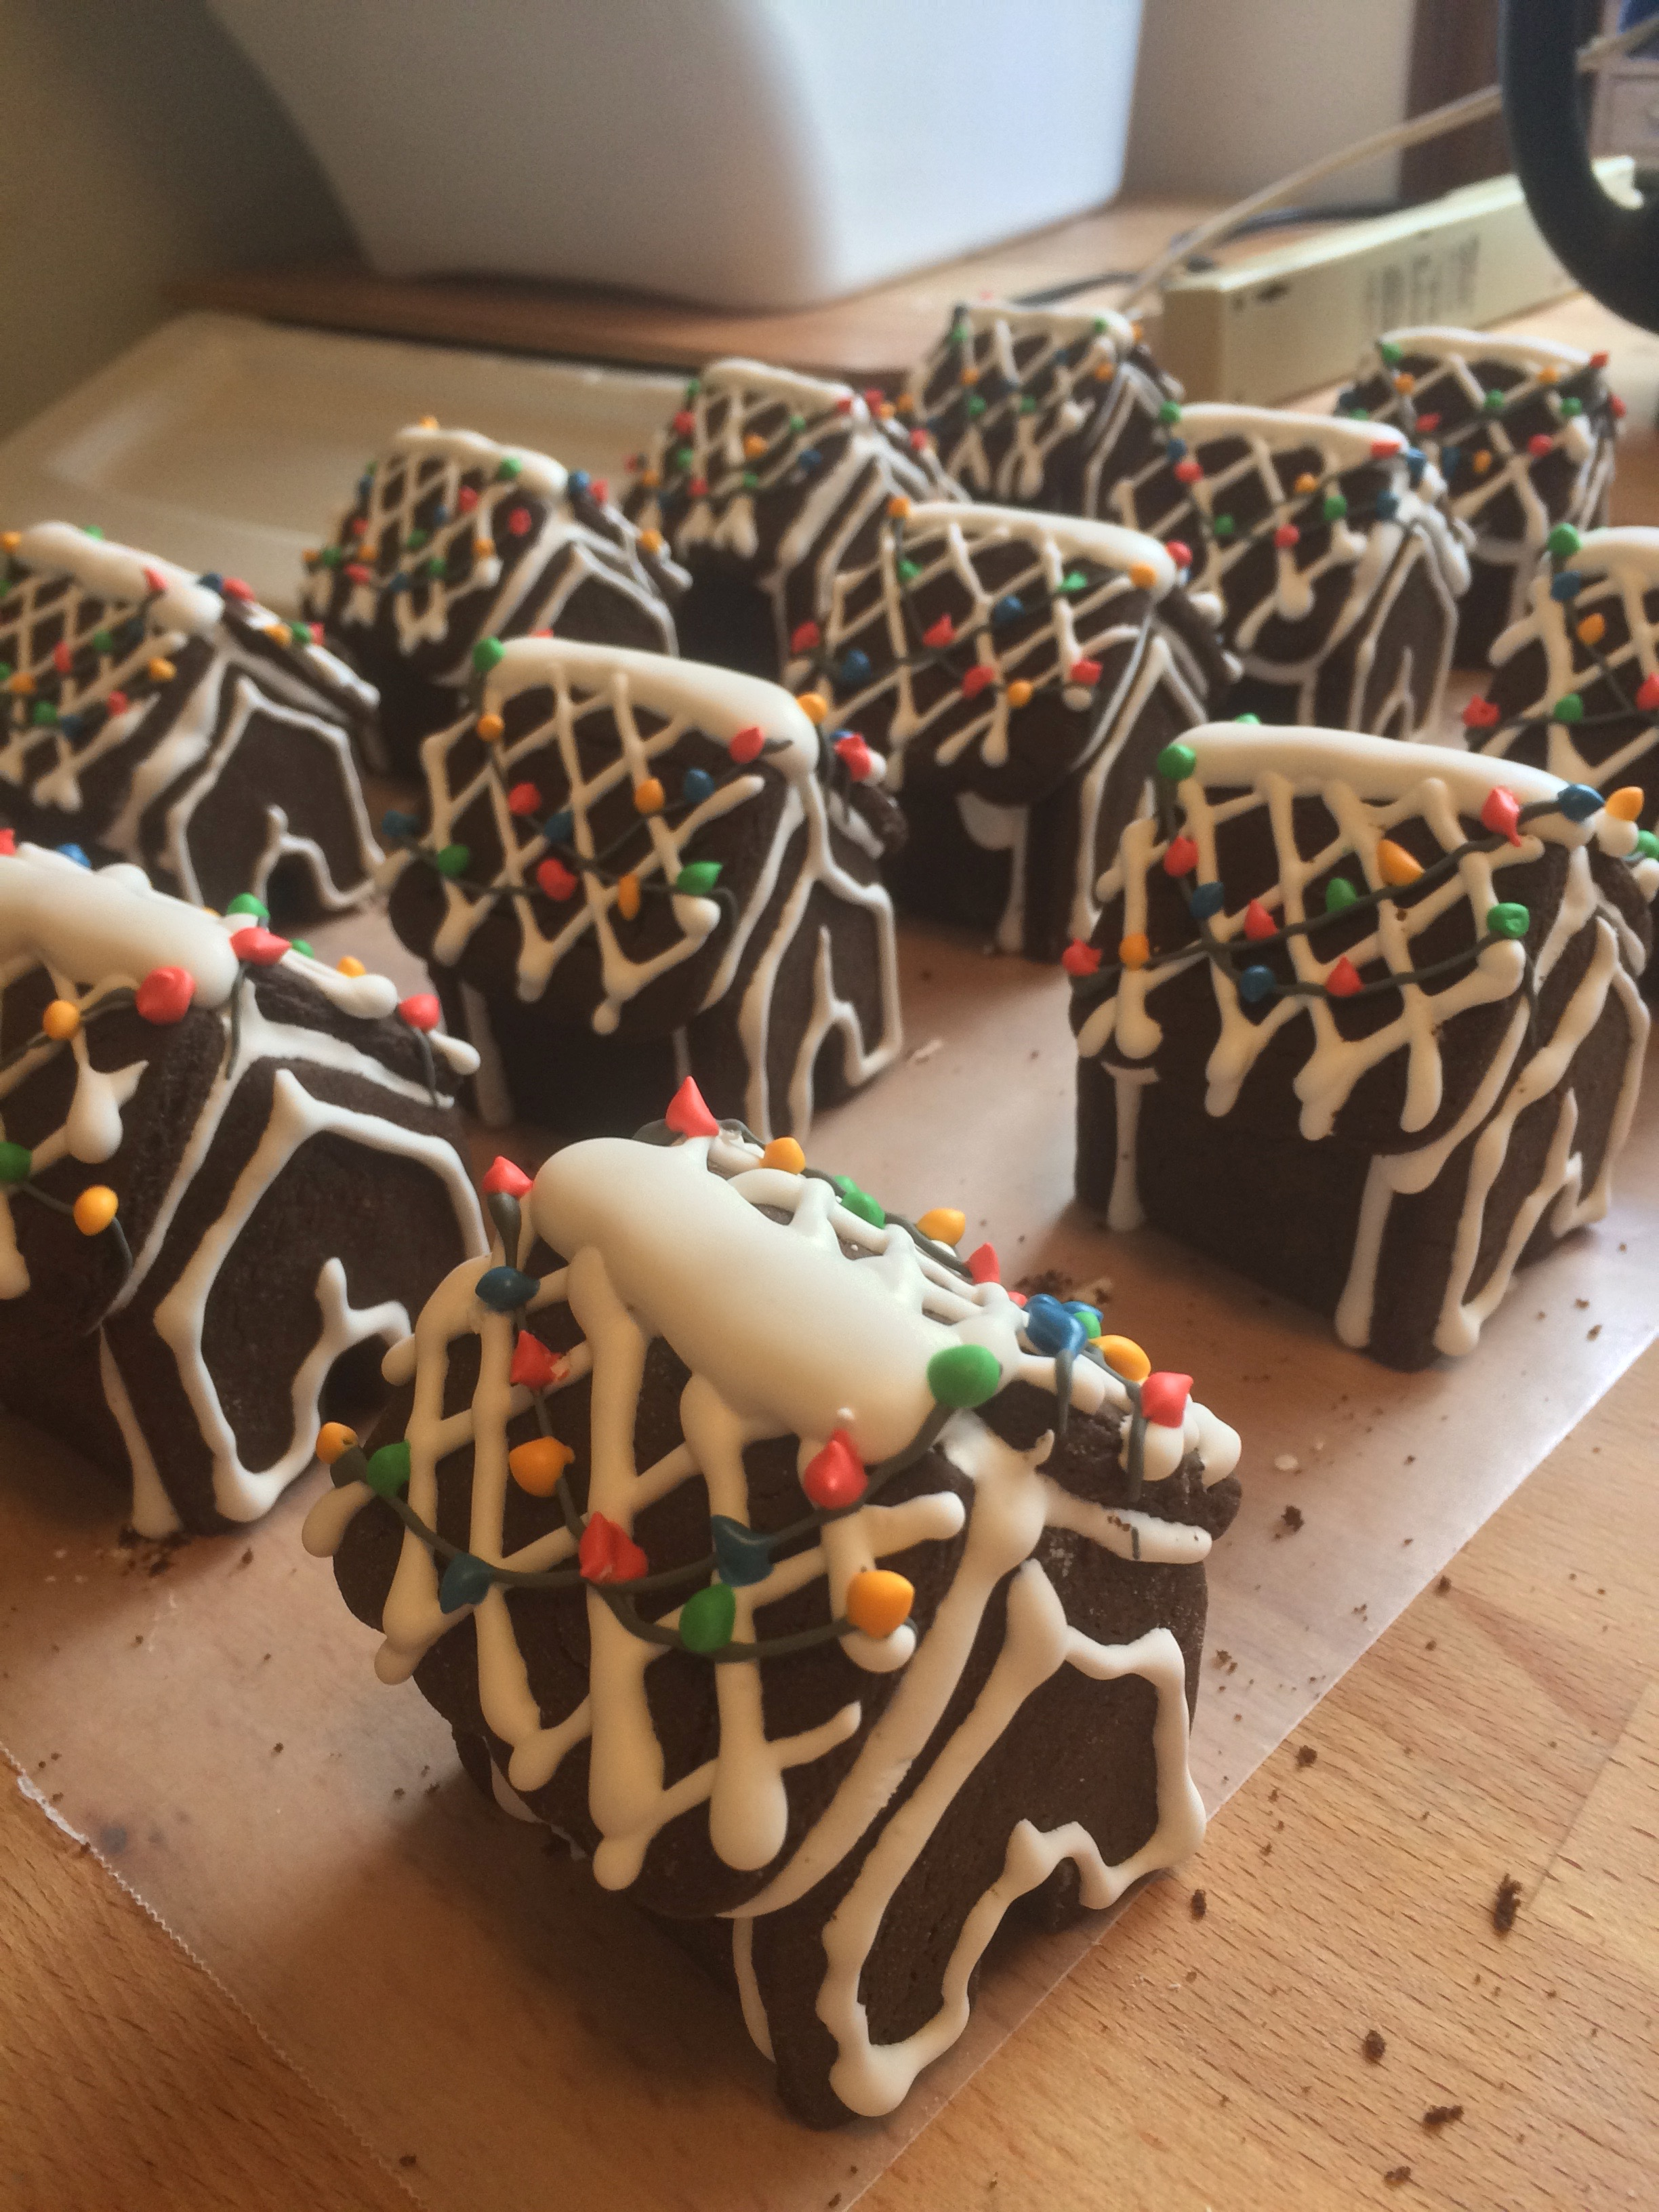 Mini-Chocolate Gingerbread Houses, decorated with royal icing